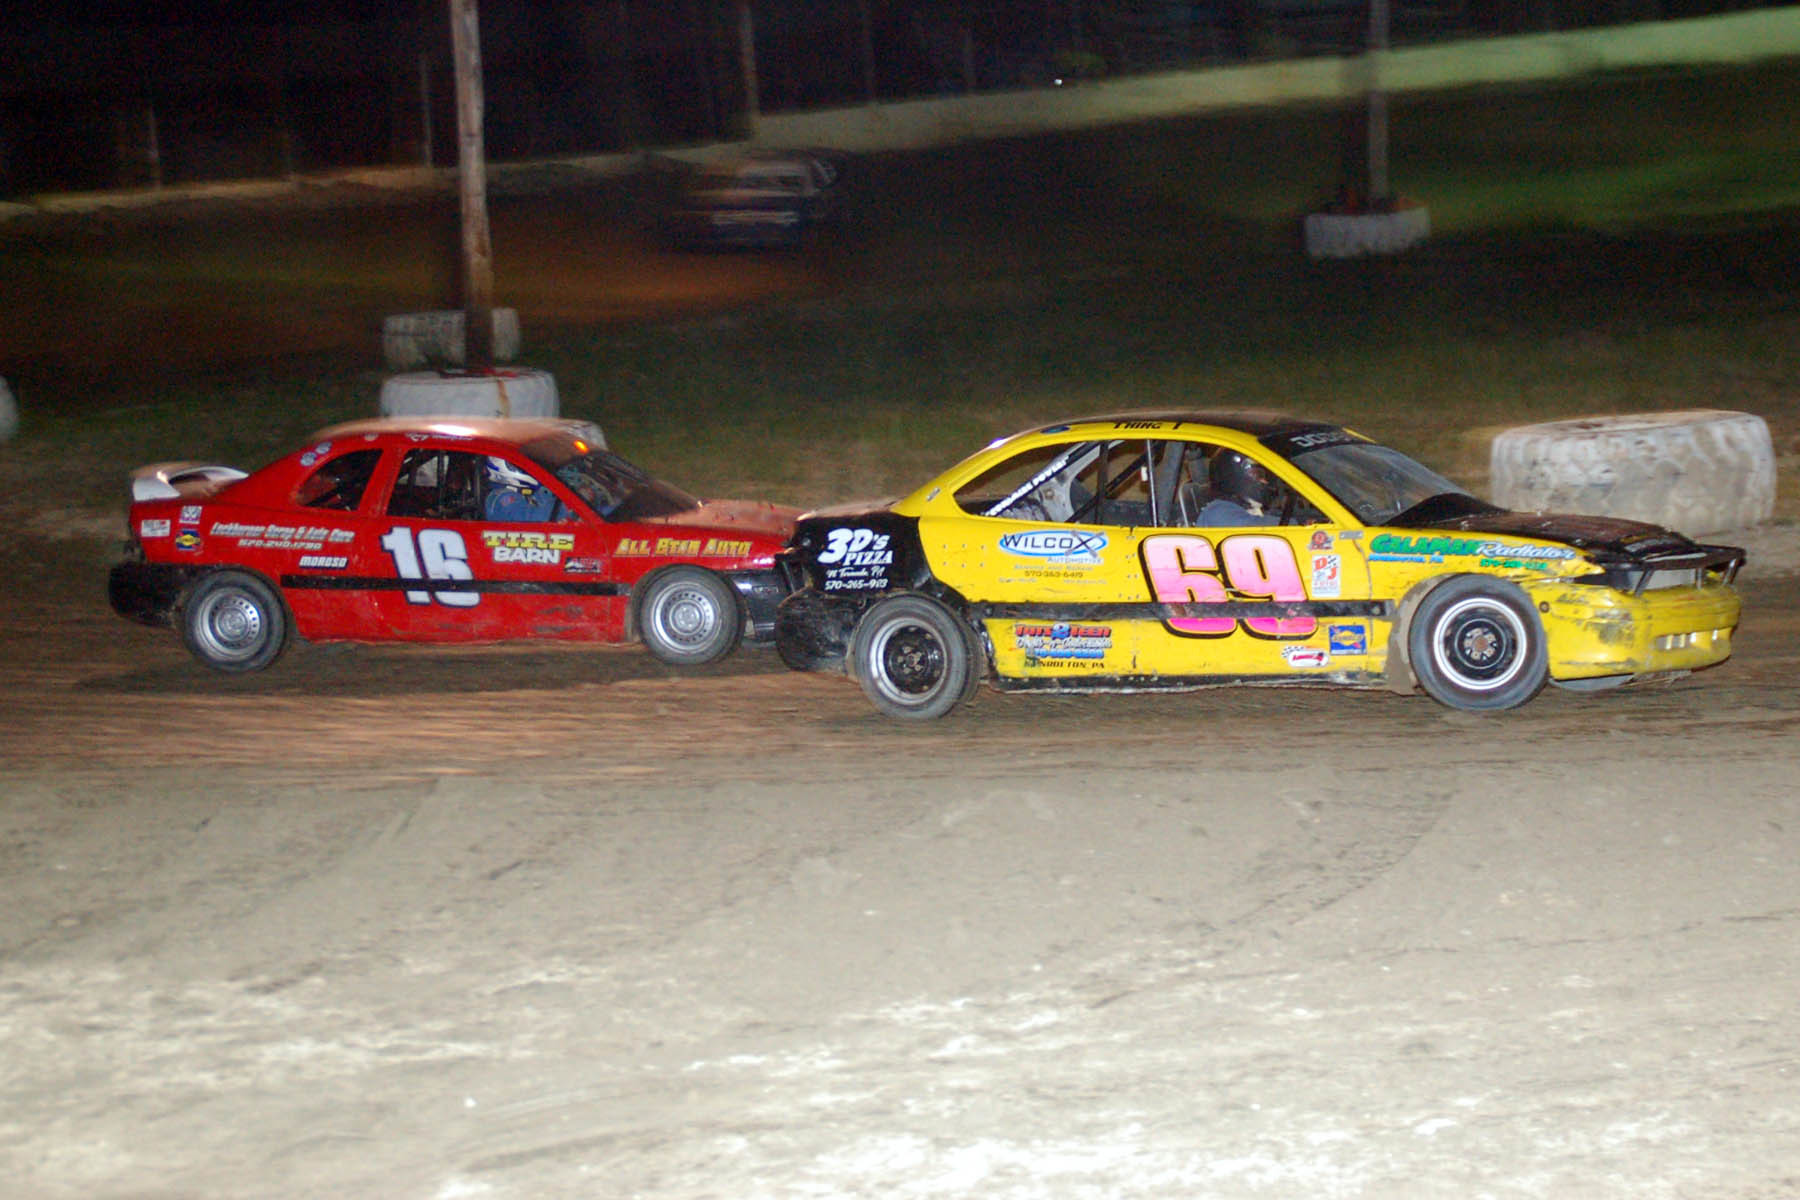 Kenny Underwood looks to the inside of leader Burt Maynard